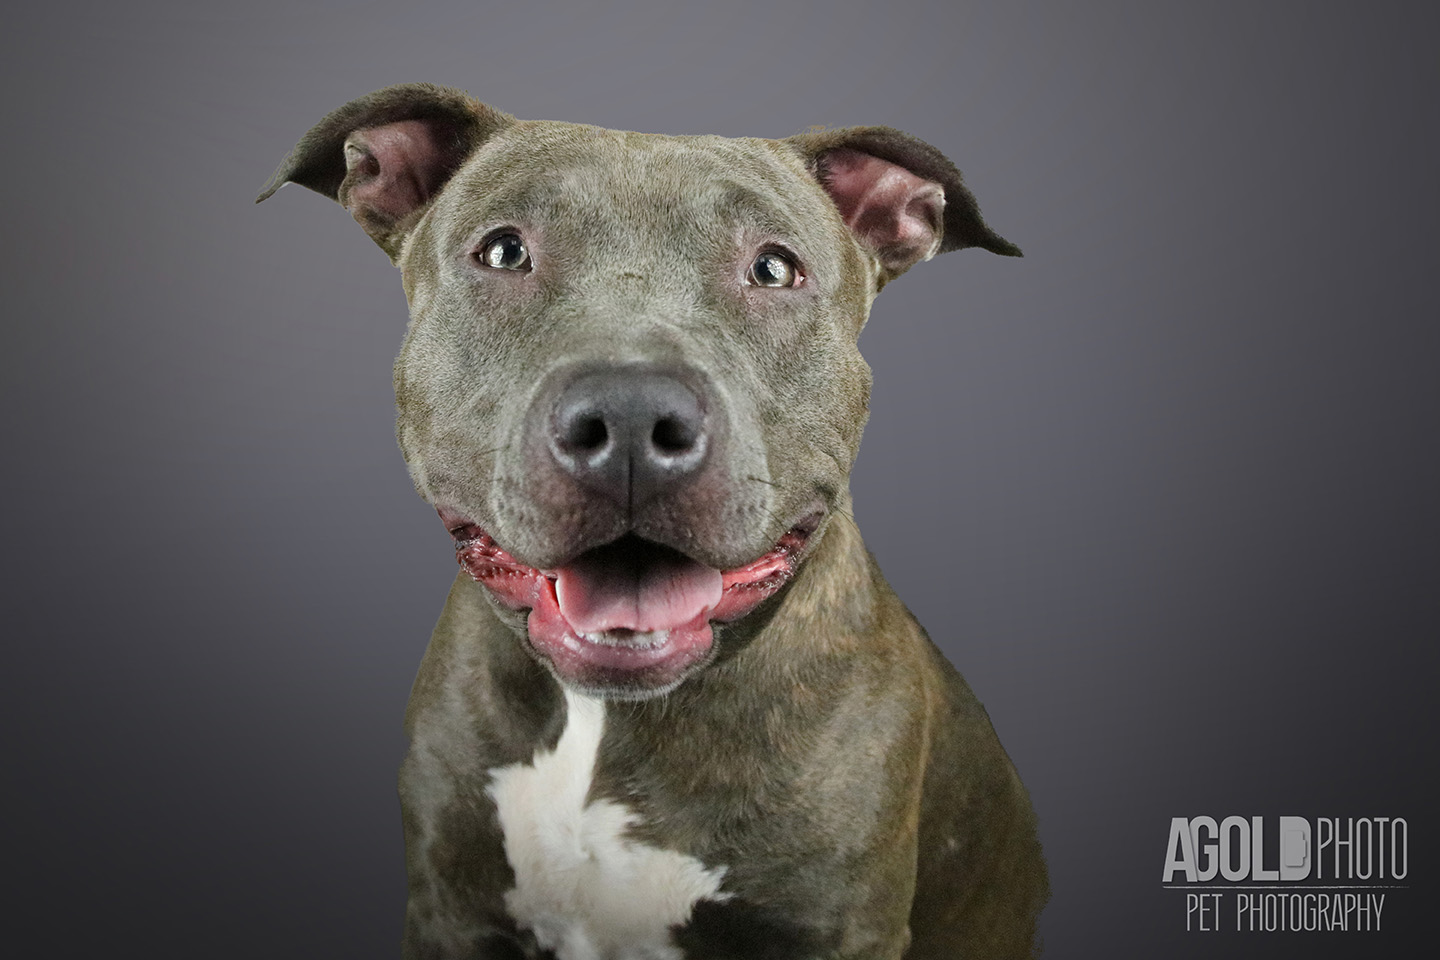 nelly_agoldphoto-tampa-pet-photography__agoldphoto-tampa-pet-photography_